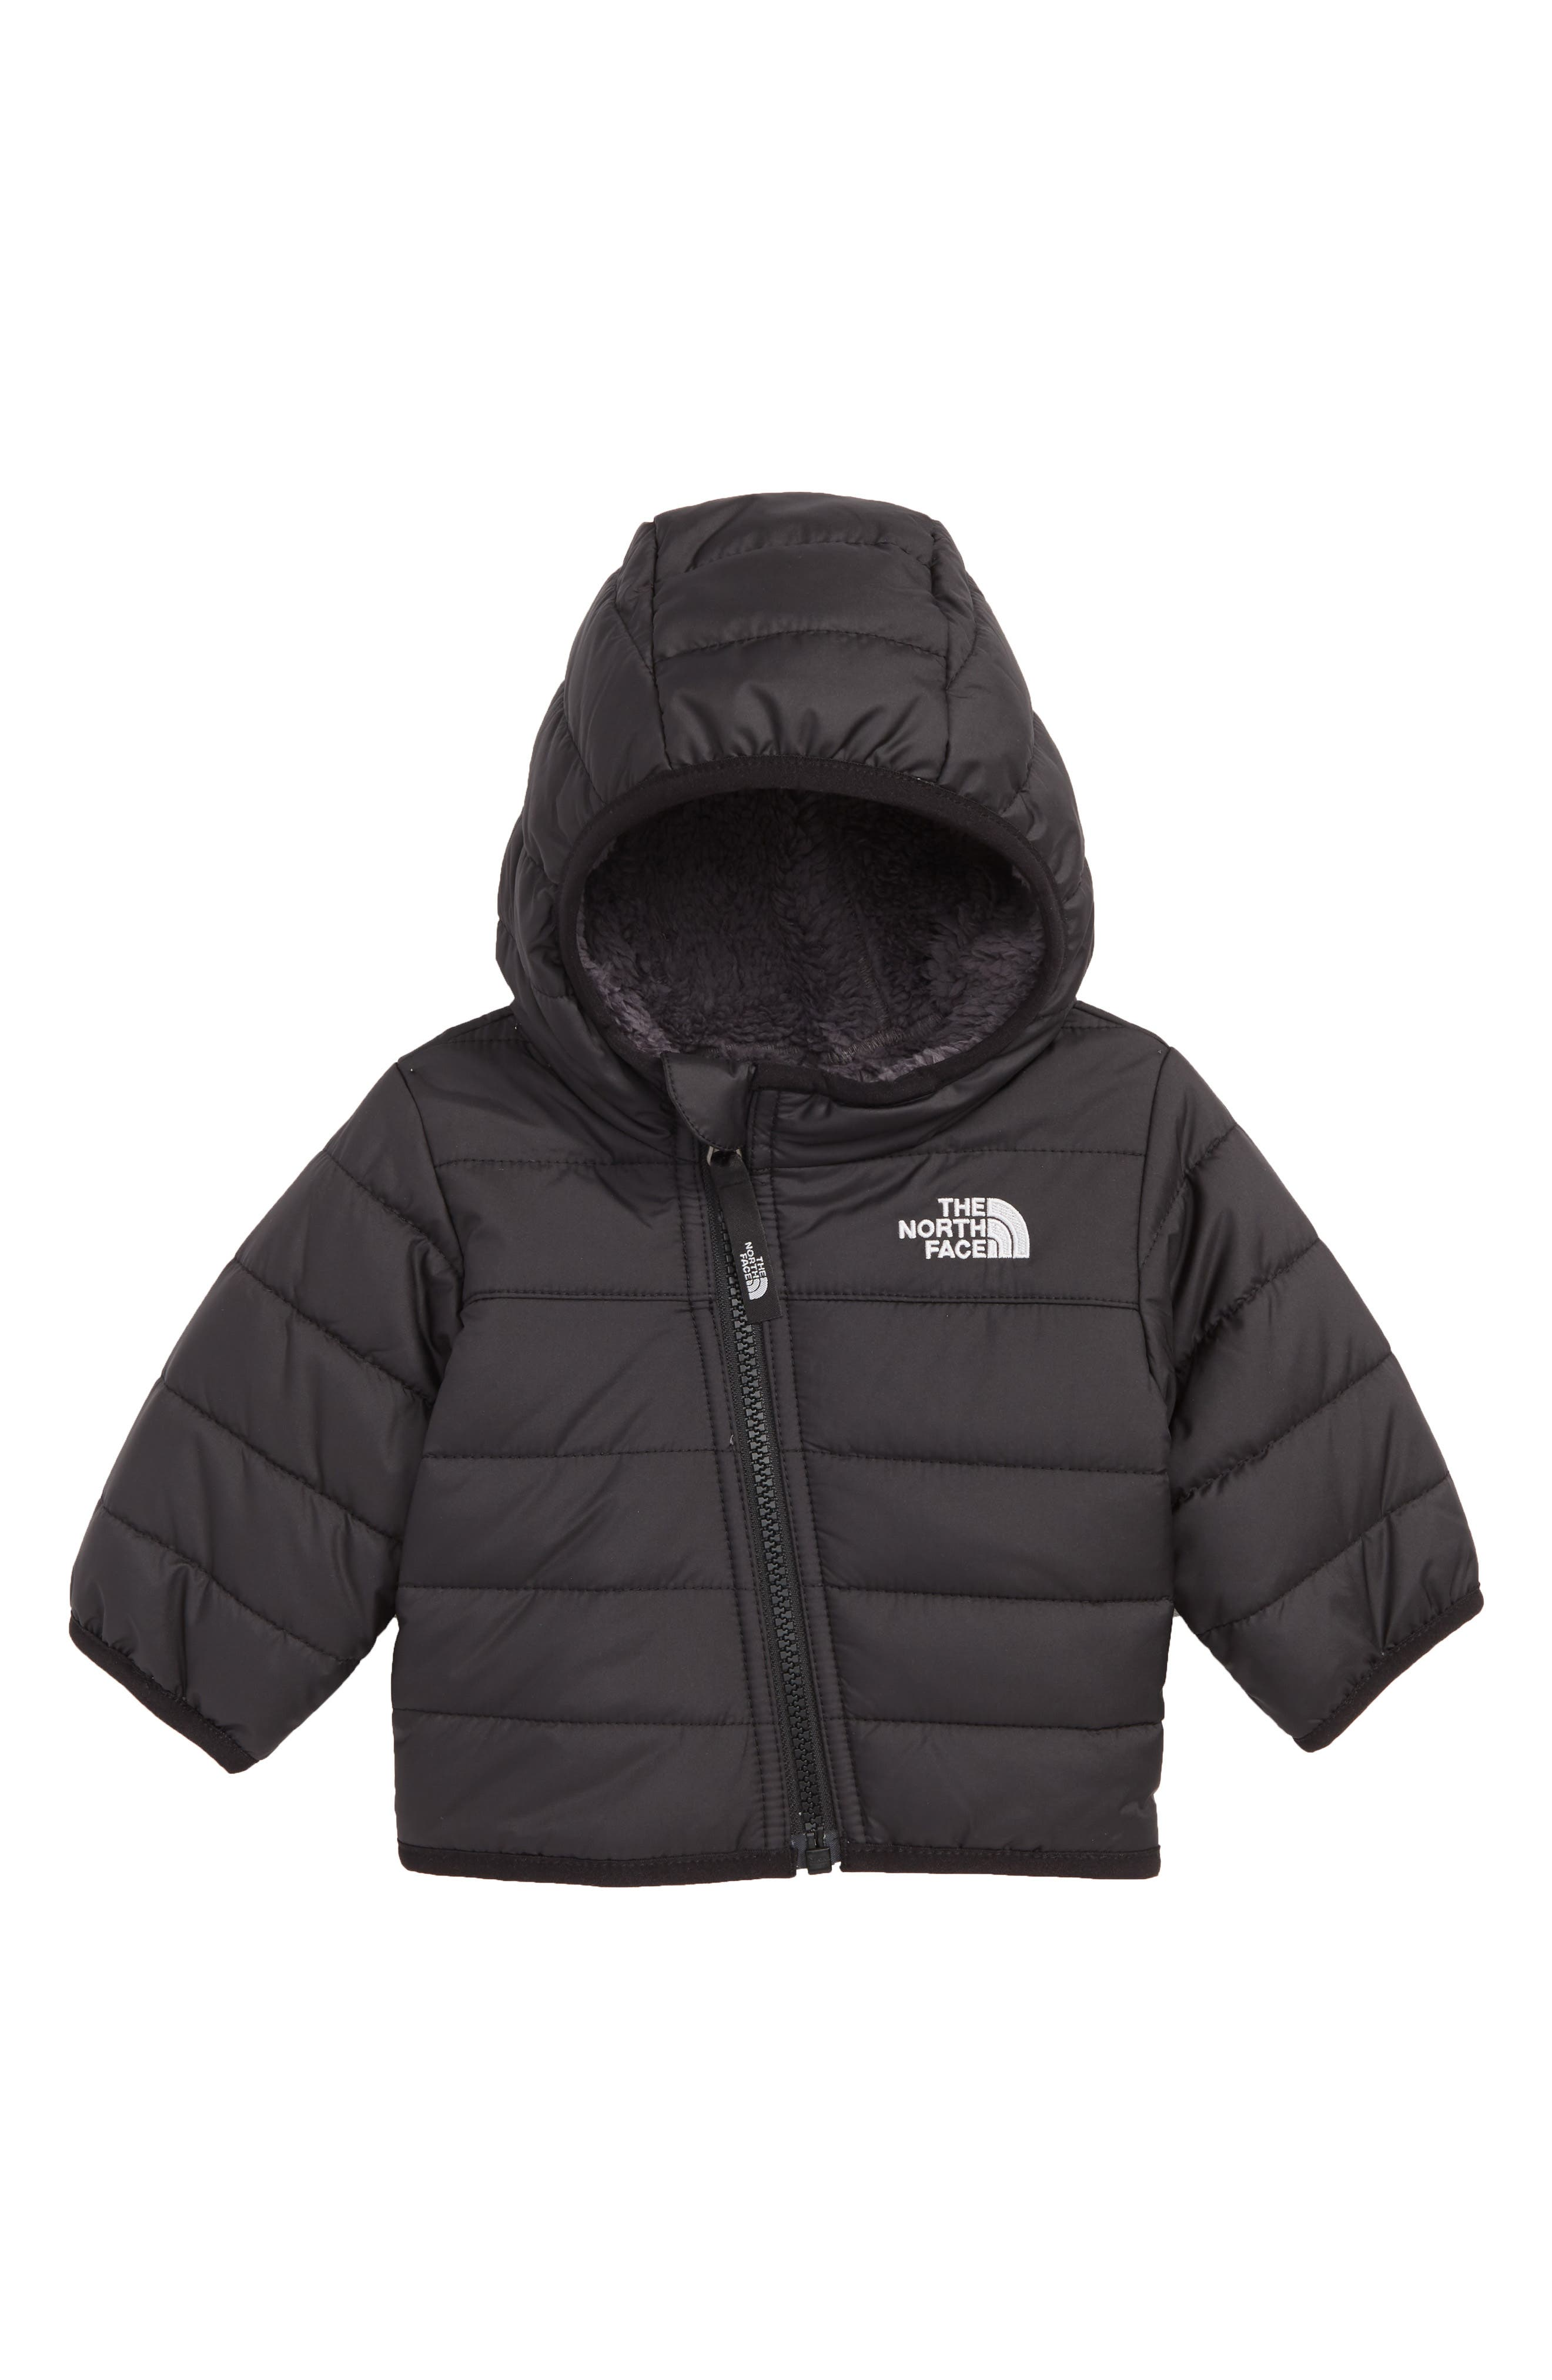 THE NORTH FACE, Mount Chimboraz Reversible Water Repellent Heatseeker<sup>™</sup> Insulated Hooded Jacket, Main thumbnail 1, color, 001